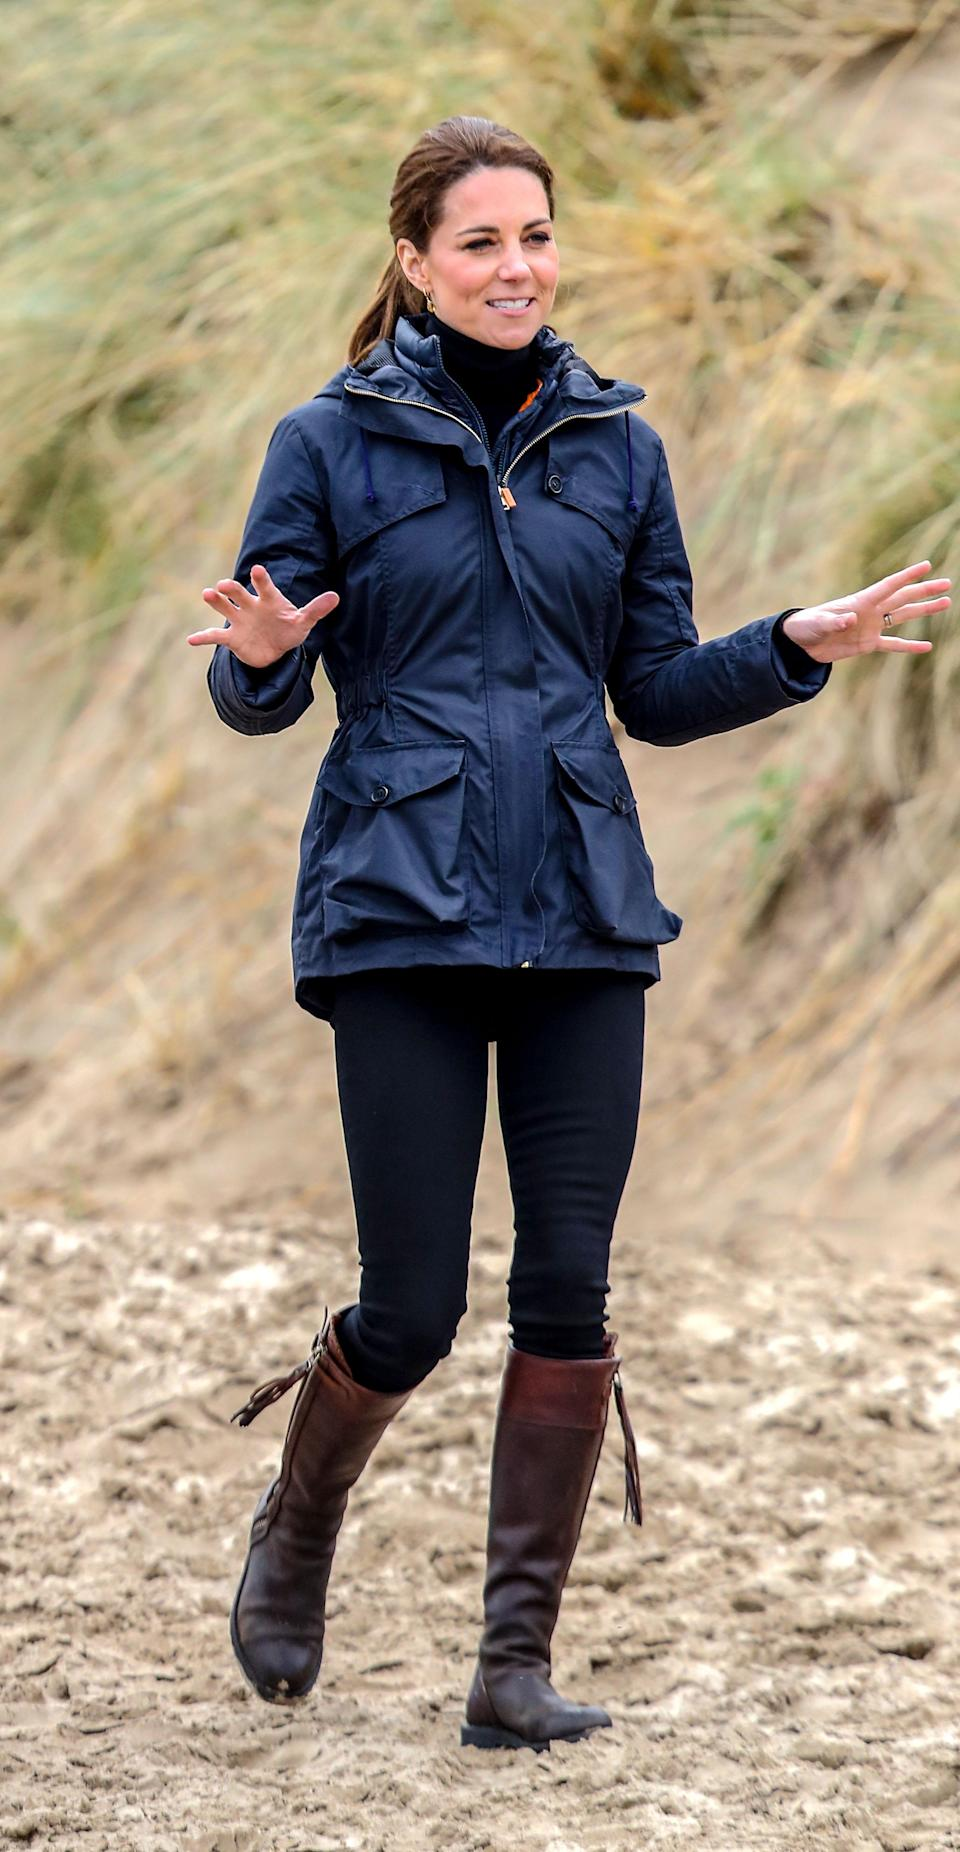 During her day of engagements in North Wales, Kate swapped her red Philosophy by Lorenzo Serafini blazer for a new wax parka by Troy London. She swapped her Aquatalia boots for her trusty Penelope Chilvers pair. [Photo: Getty]